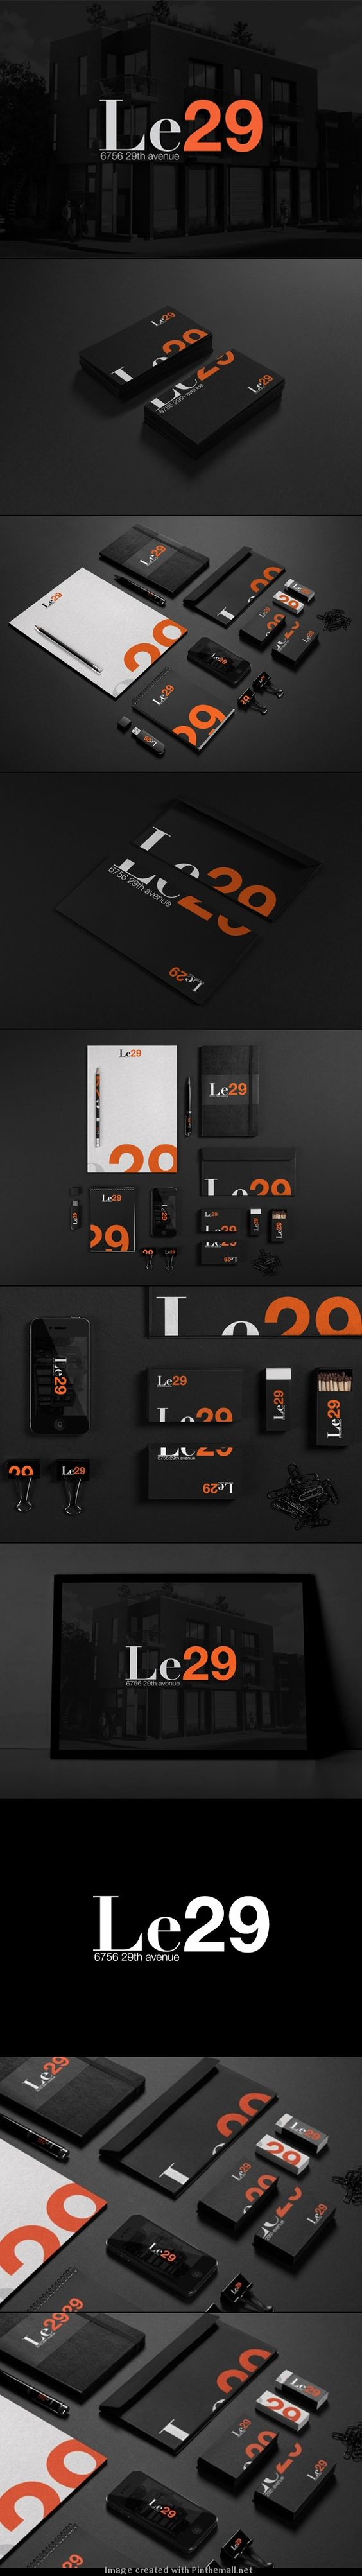 Sleek accomplished branding for Le29 identity. The full family looks an impressive piece of work.